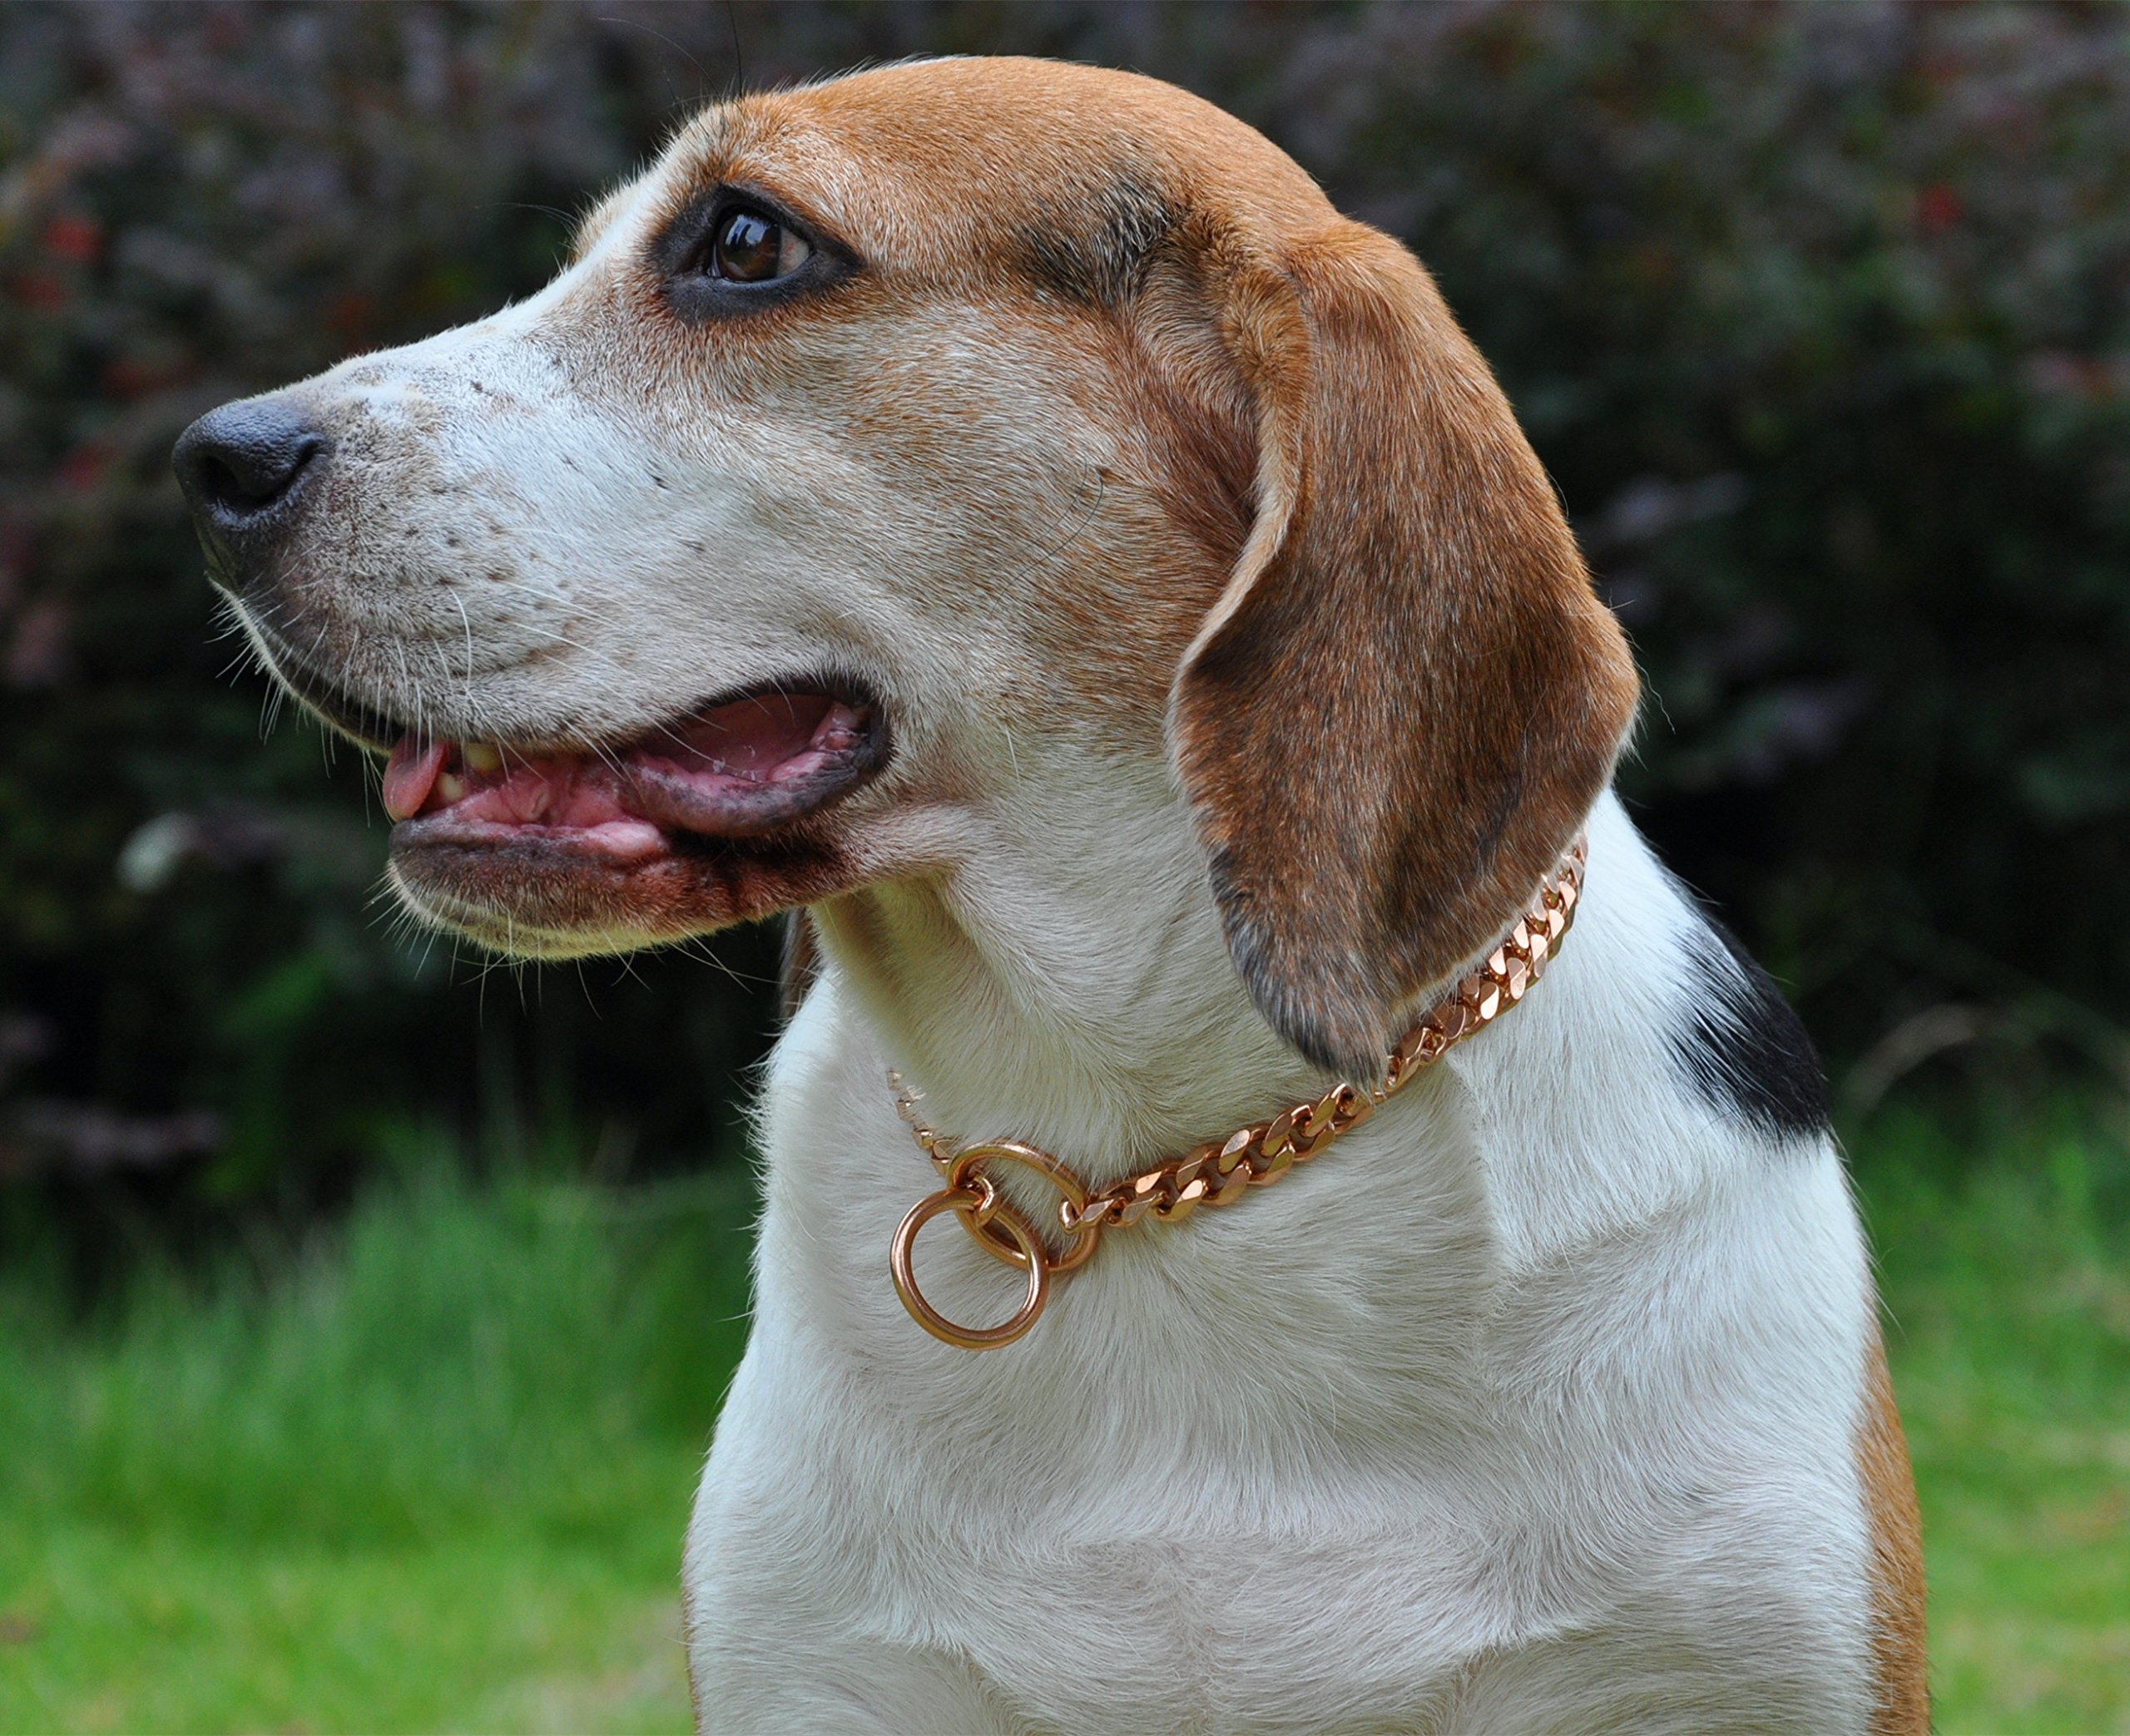 SLZZ Luxury Dog Choke Collar Chain/Slip Martingale P Chain/Heavy Duty Stainless Steel 12mm Curb Chain/Best for Small Medium Large Breeds/Rose Gold,26''